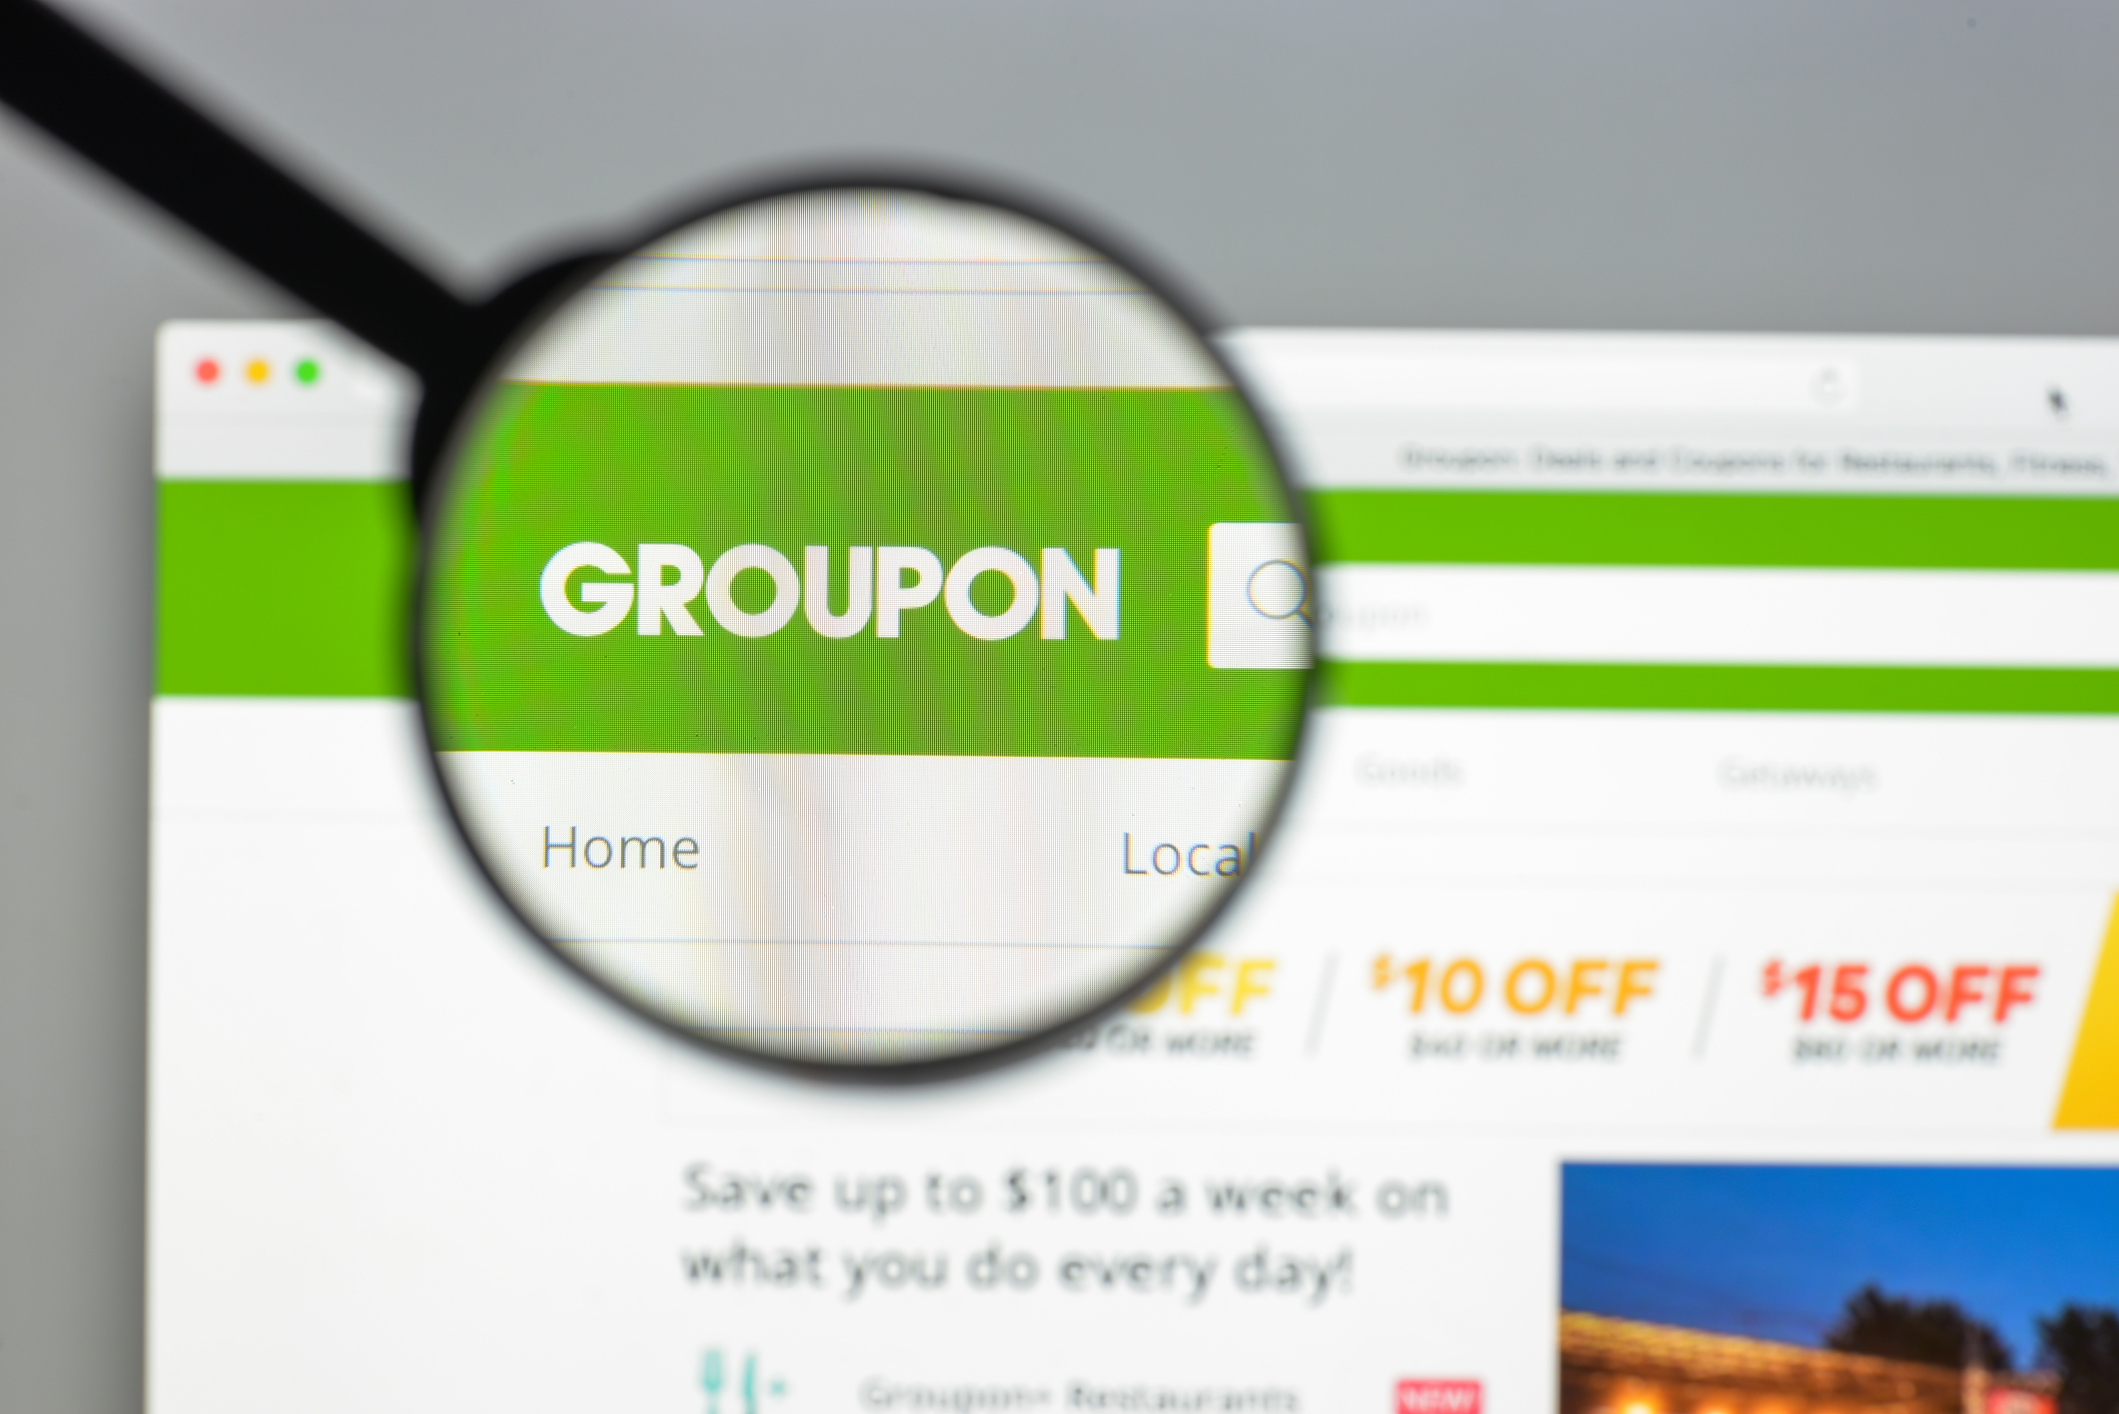 BEST DEALS ON GROUPON RIGHT NOW